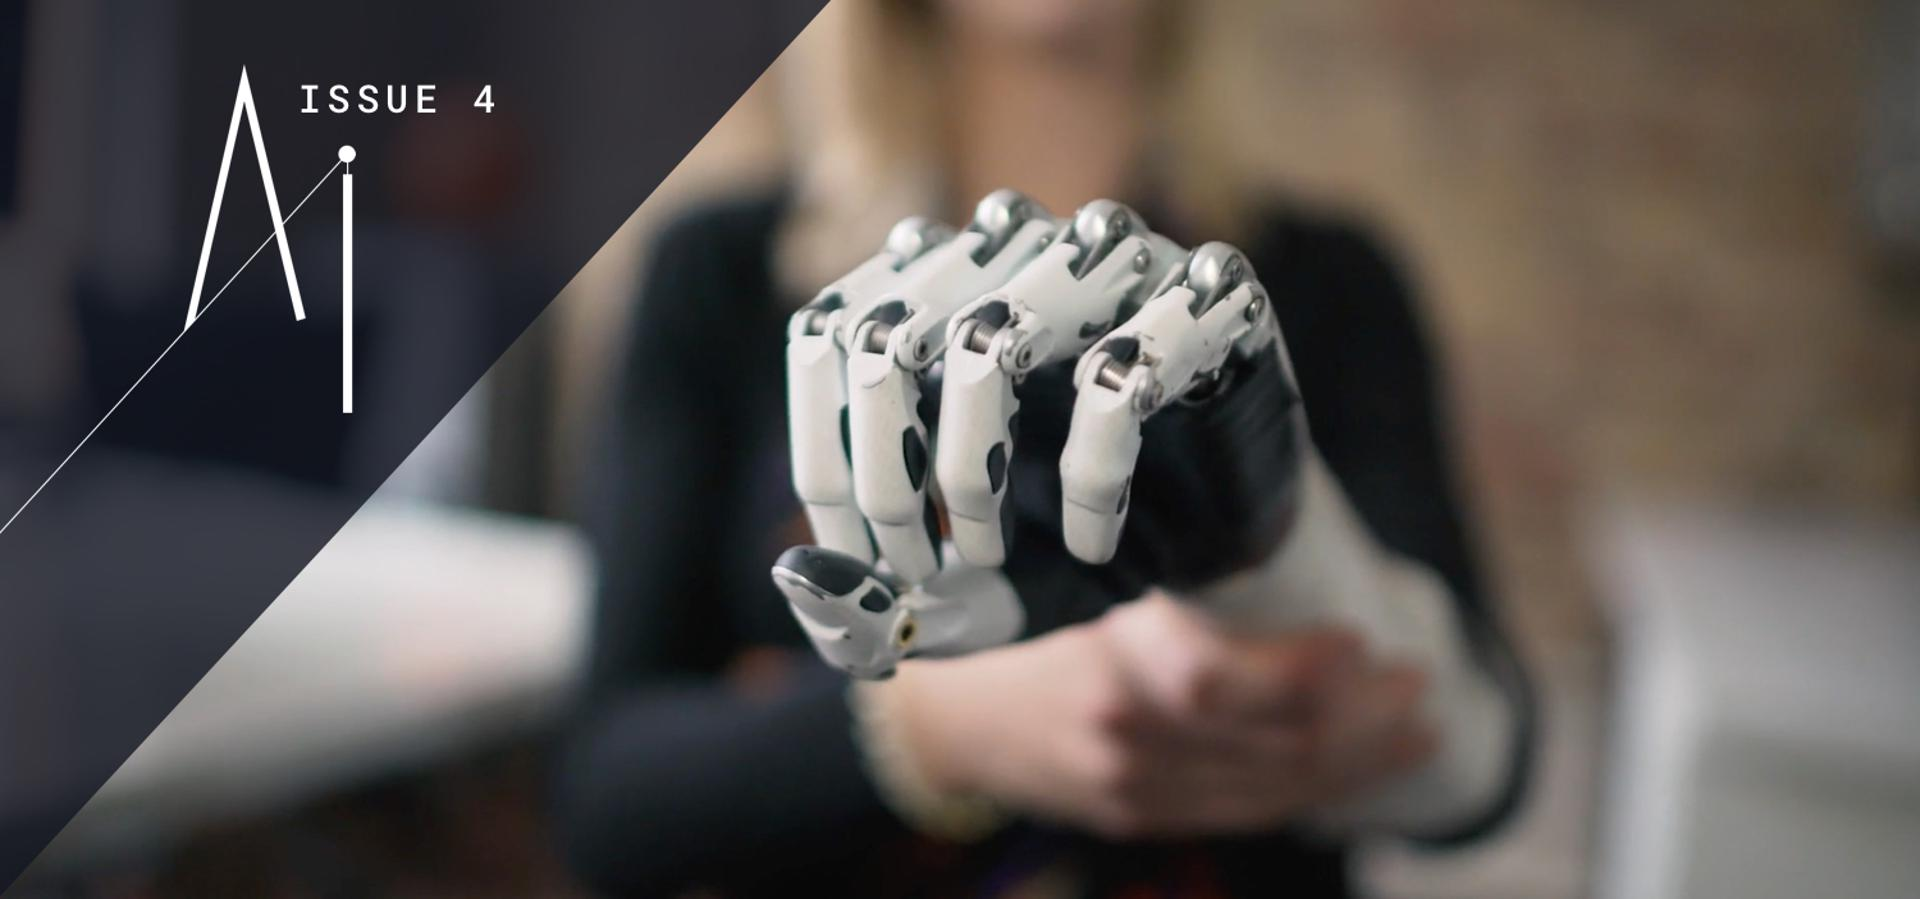 Intuitive Limbs: The New Era in Prosthetic Technology